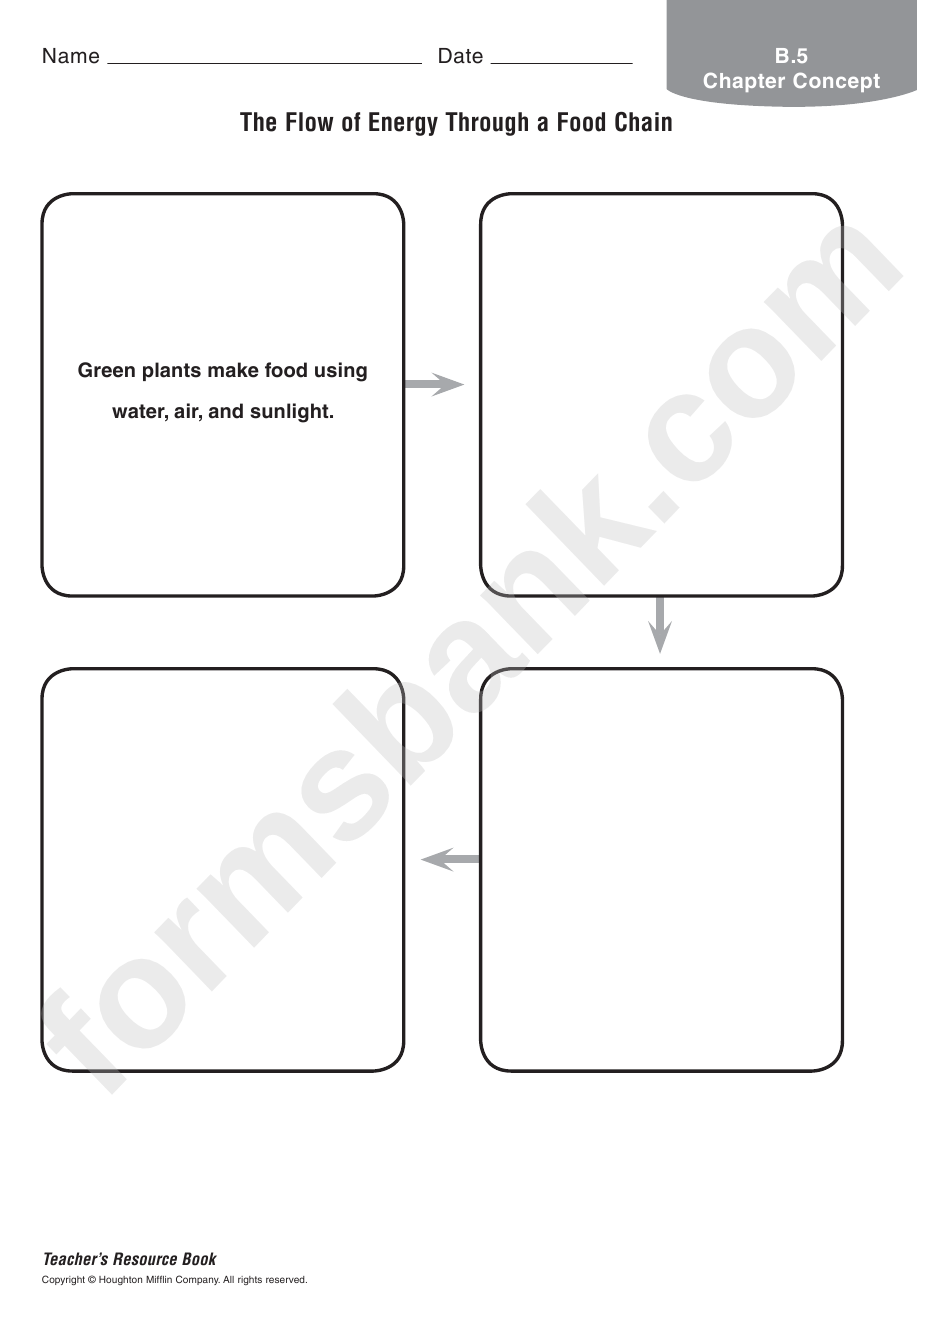 The Flow Of Energy Through A Food Chain Worksheet Printable Pdf Download